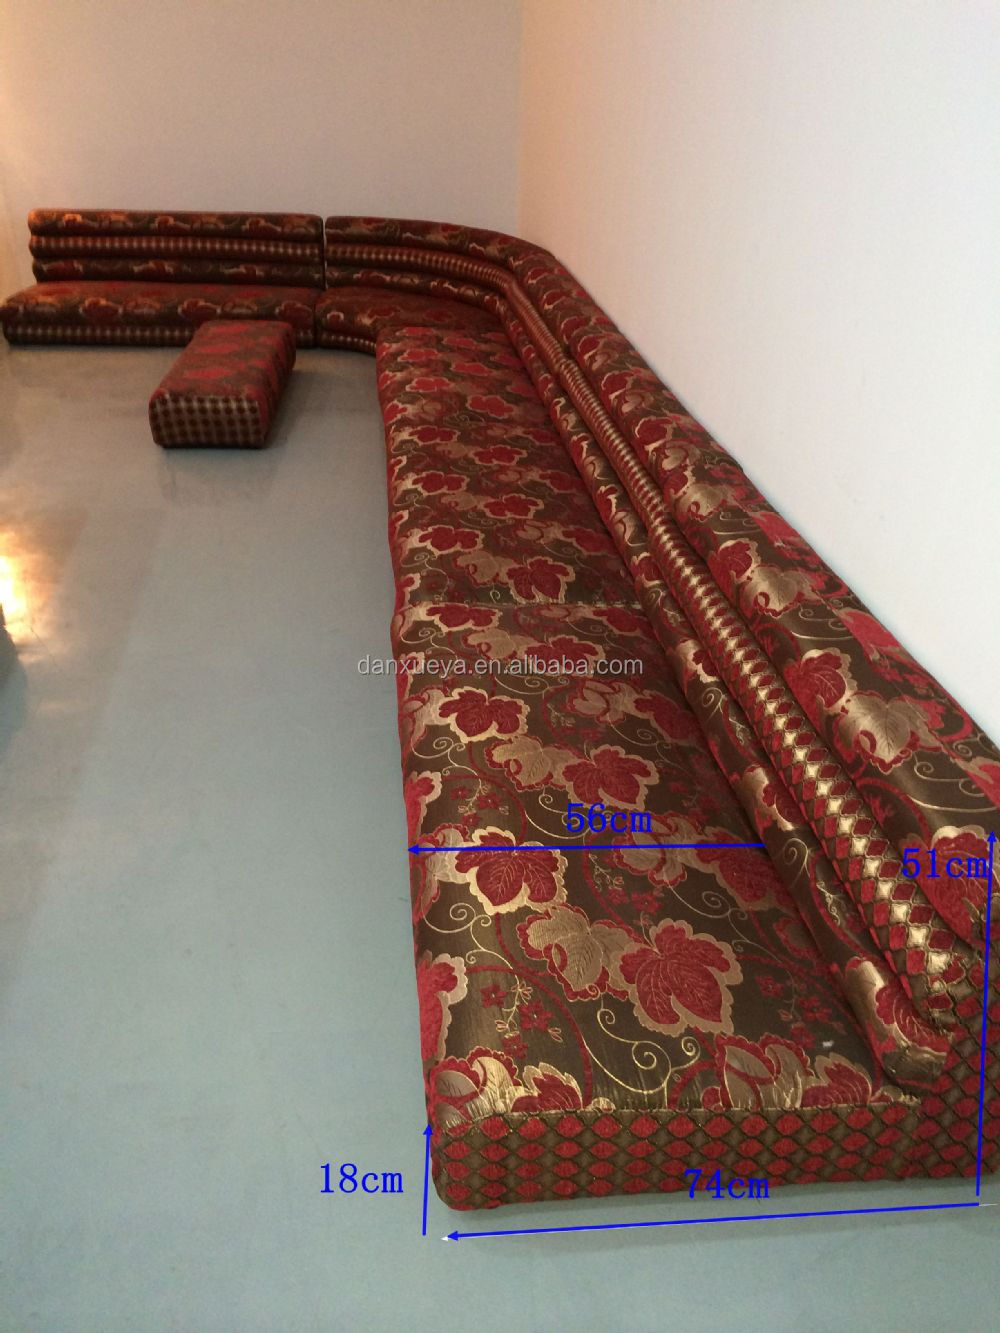 Fabric Moroccan Indian Floor Sofa For Sale,Fabric L-shape ...